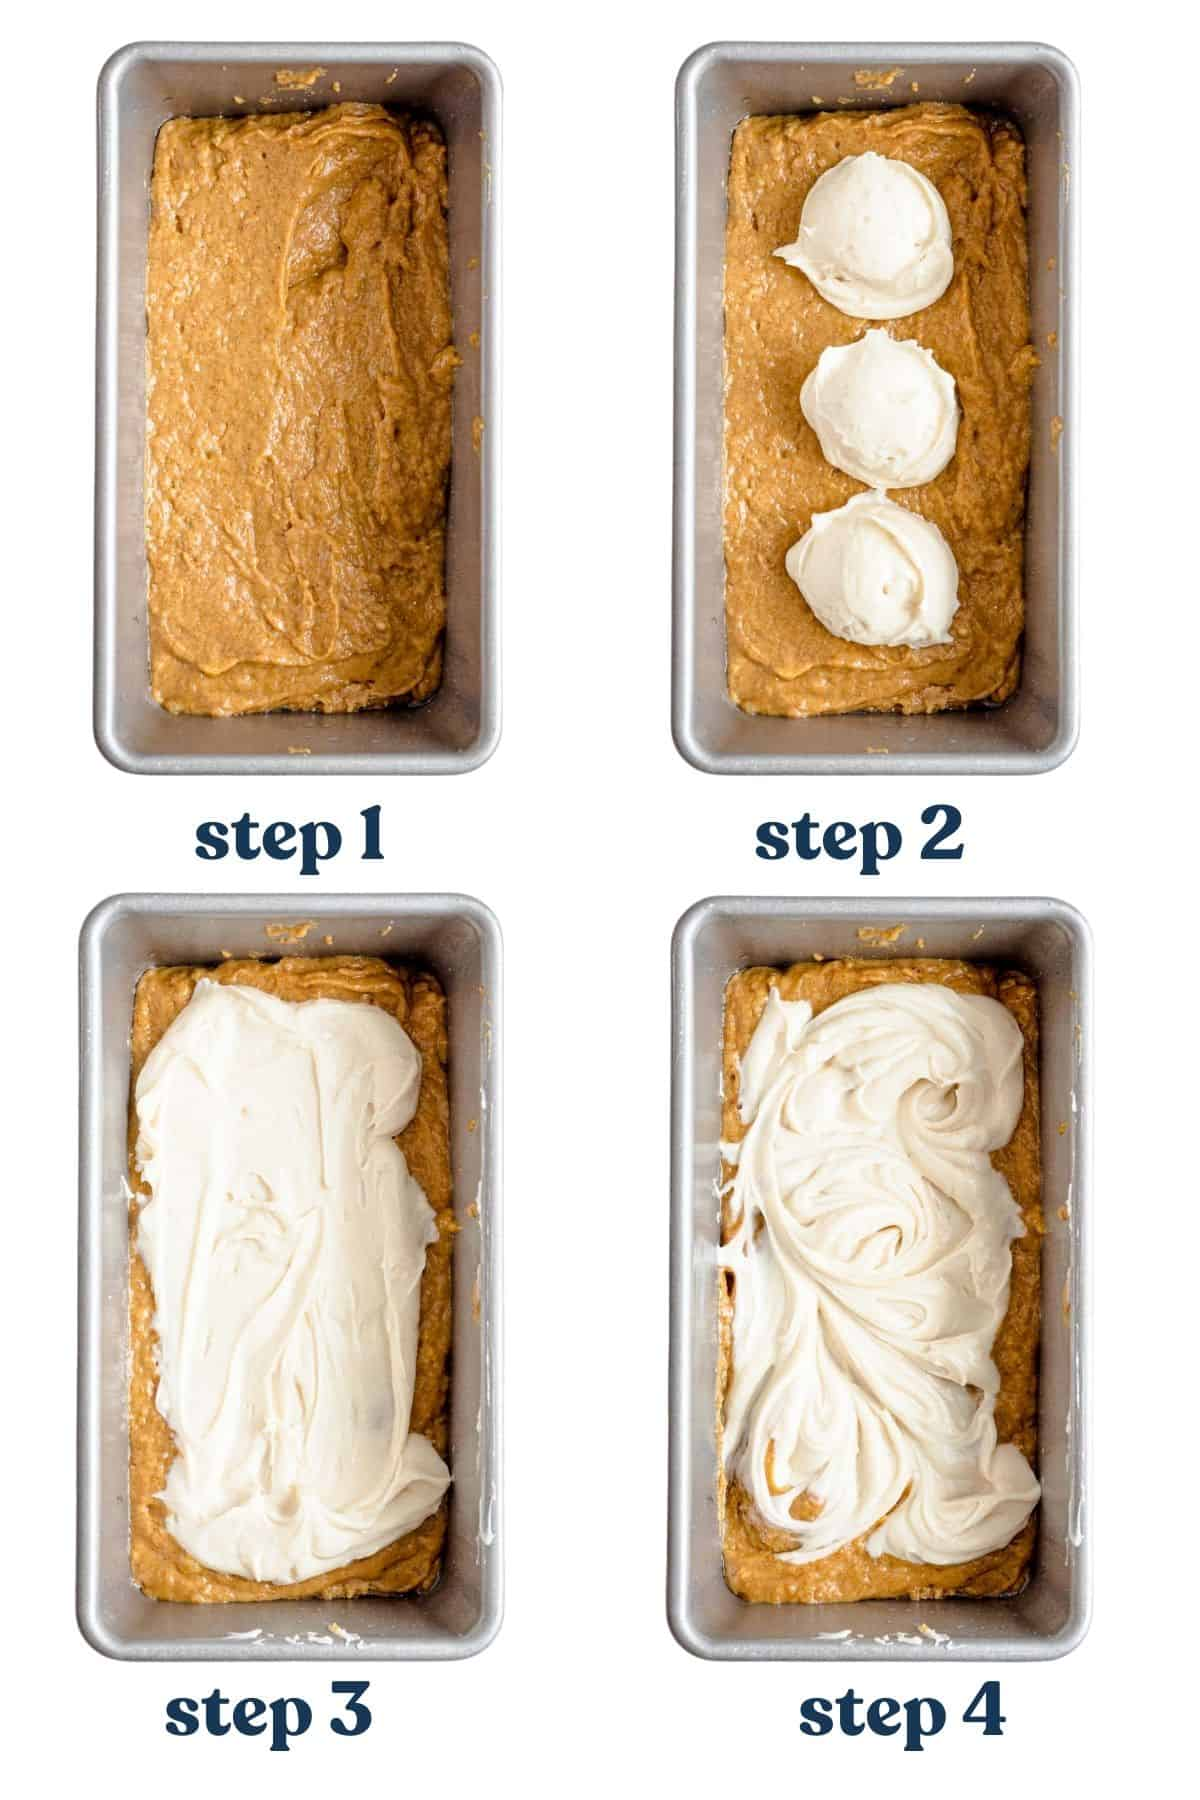 Step by step process of layering batter and cream cheese filling in loaf pan.